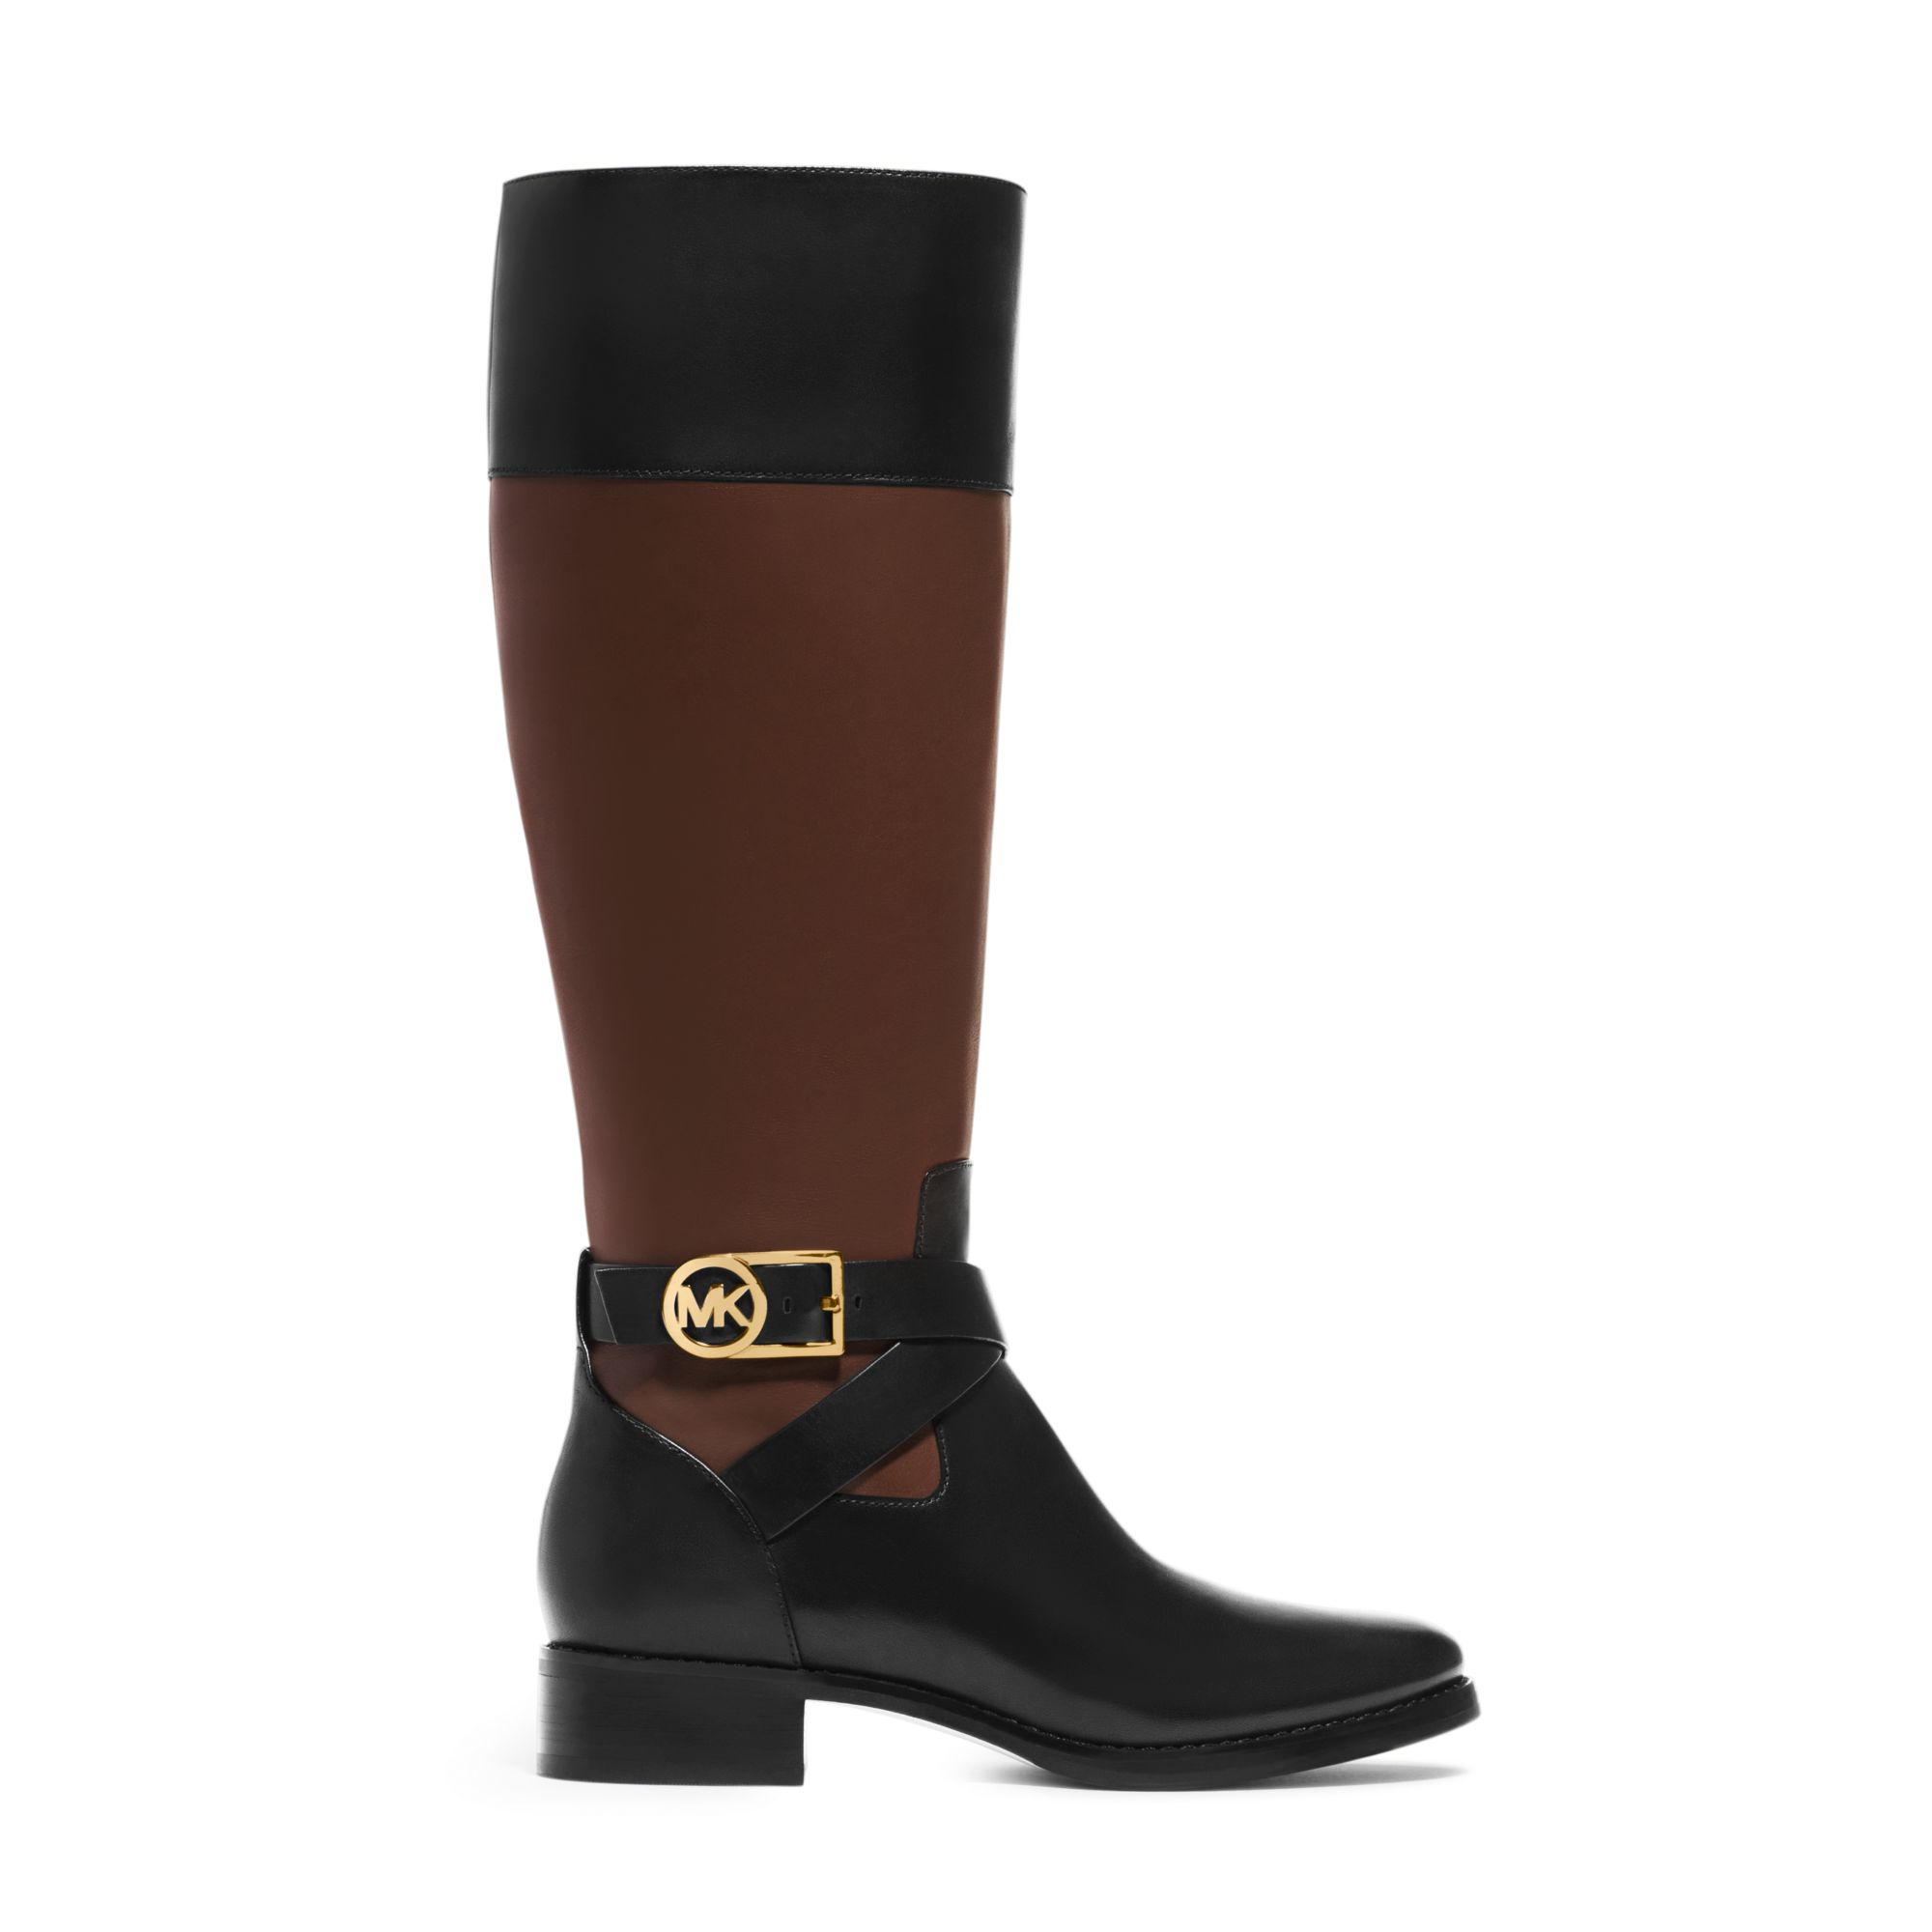 michael kors bryce leather boot in black black mocha lyst